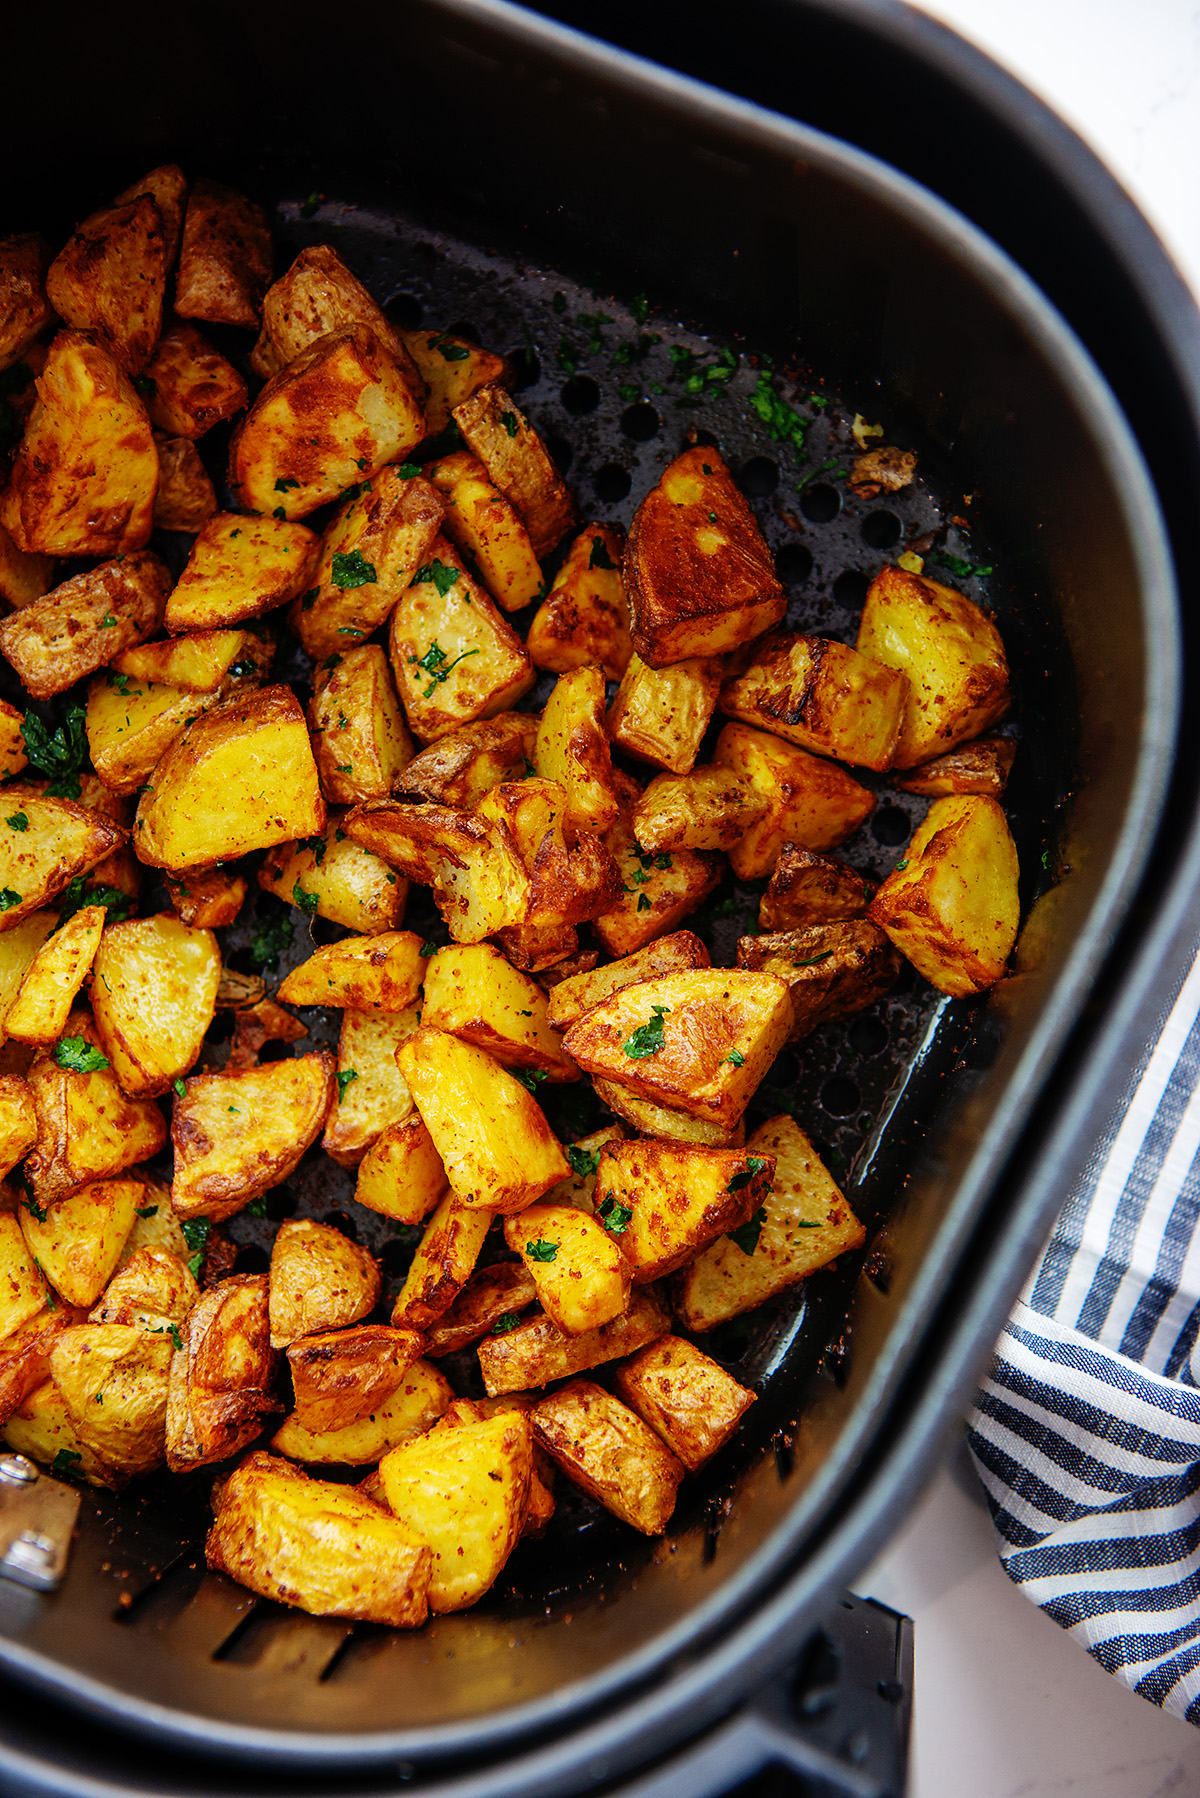 Overhead view of an air fryer basket full of roasted potatoes.